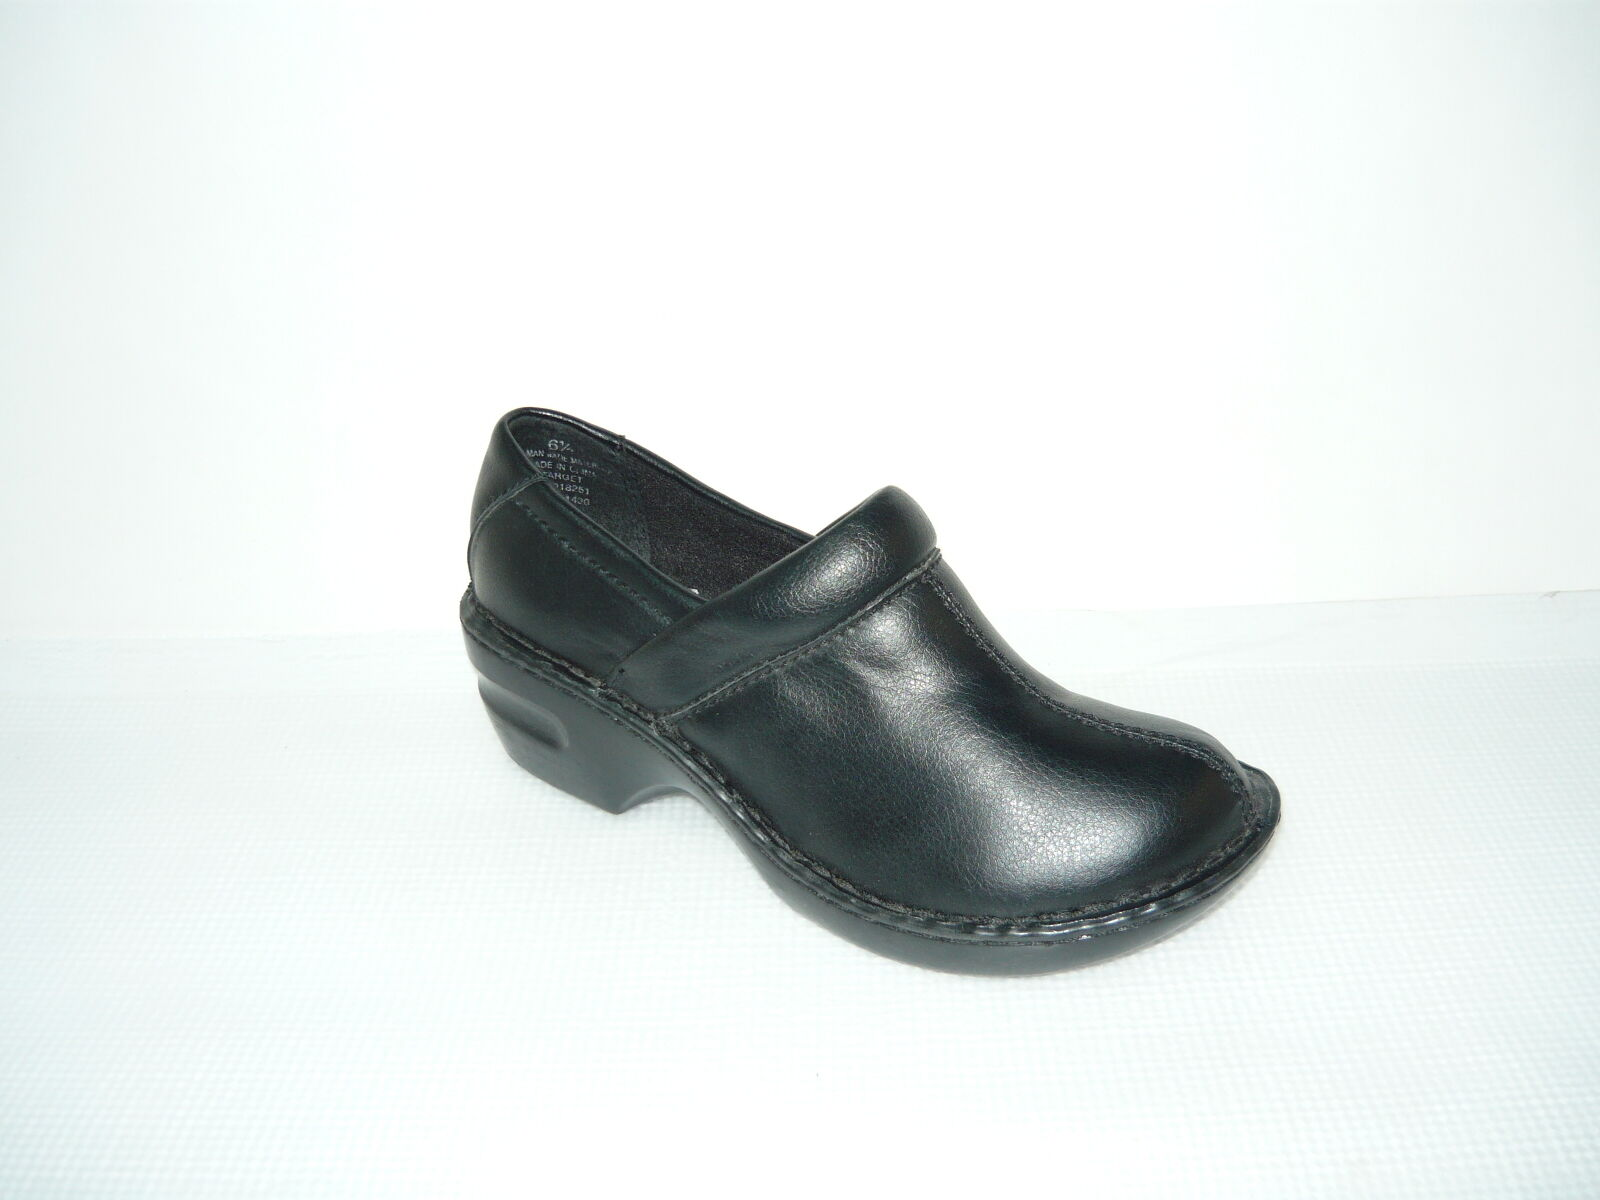 Sonoma Sndaria Black Leather Clogs shoes Size 6.5 Med